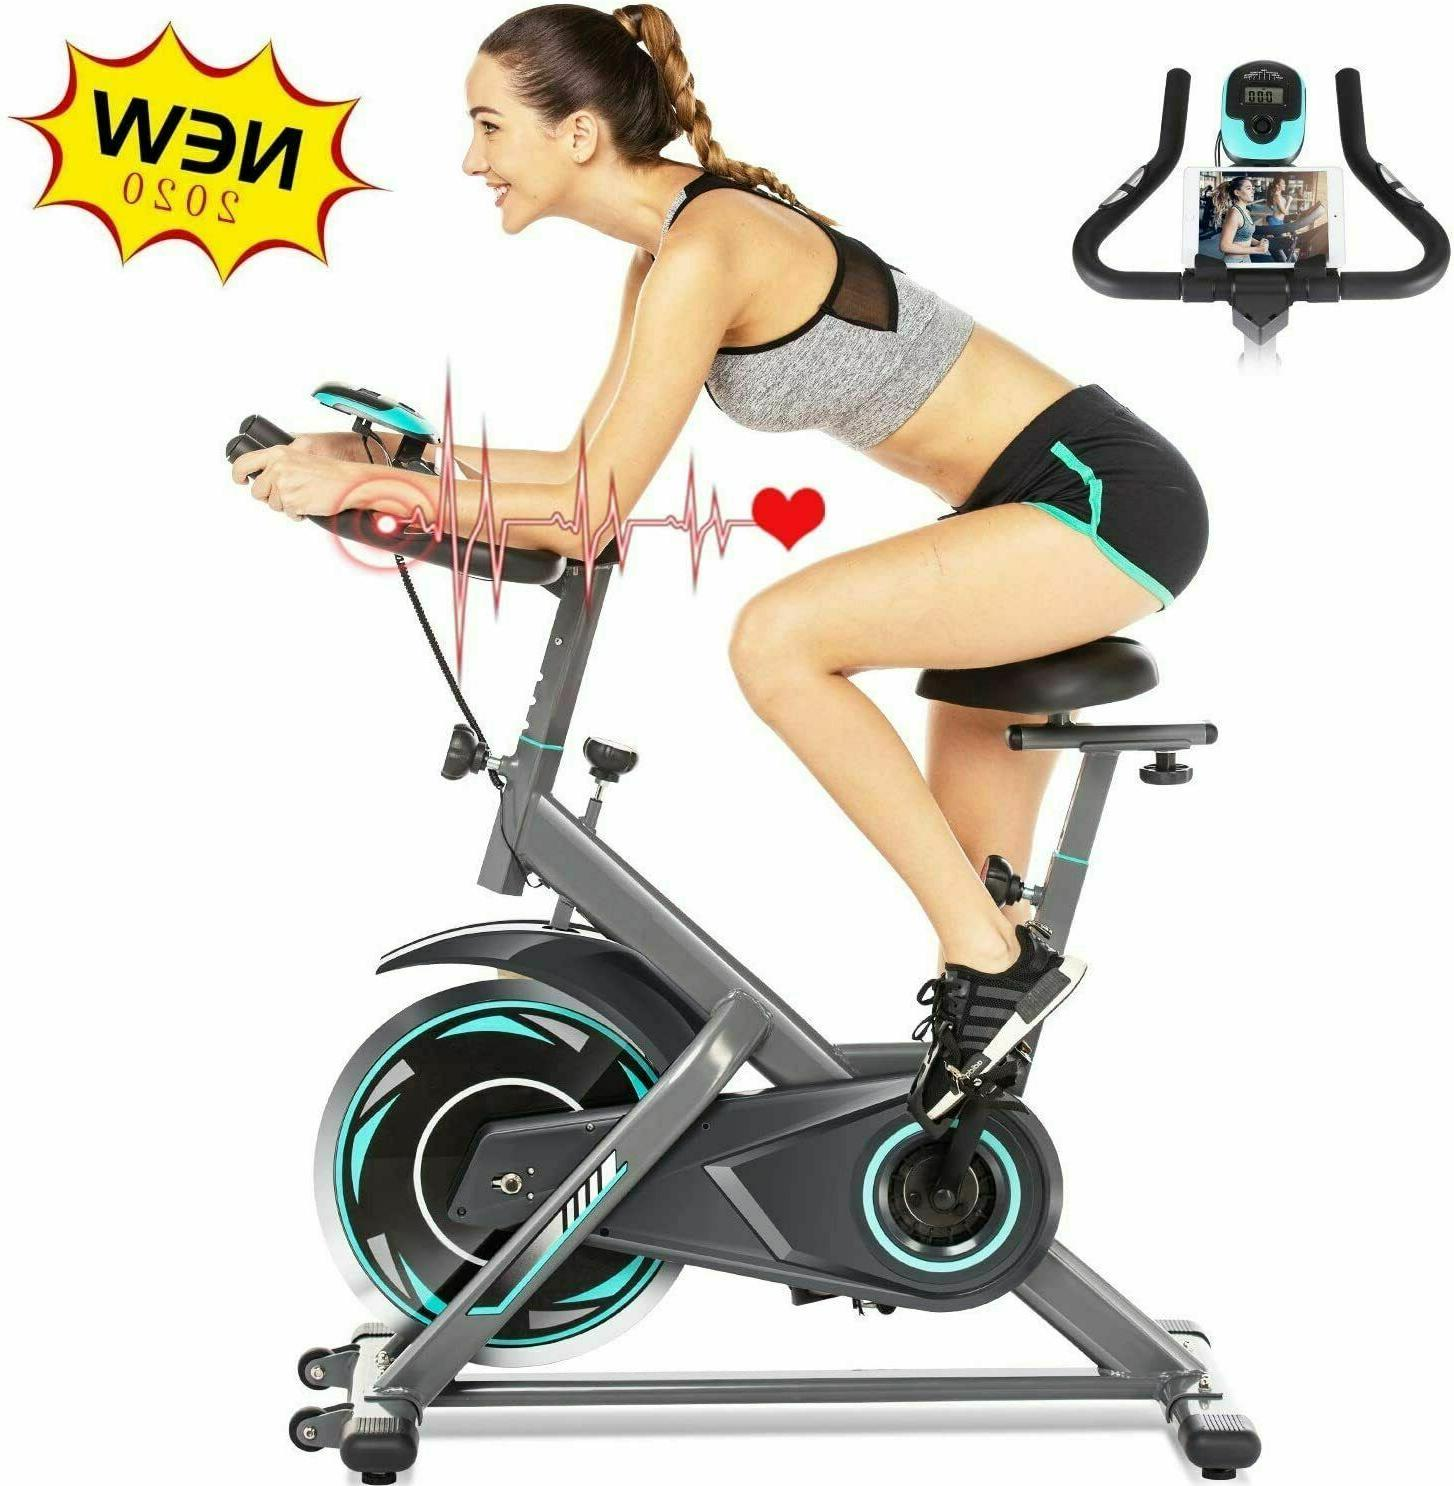 ANCHEER Stationary Cycling Bicycle Cardio